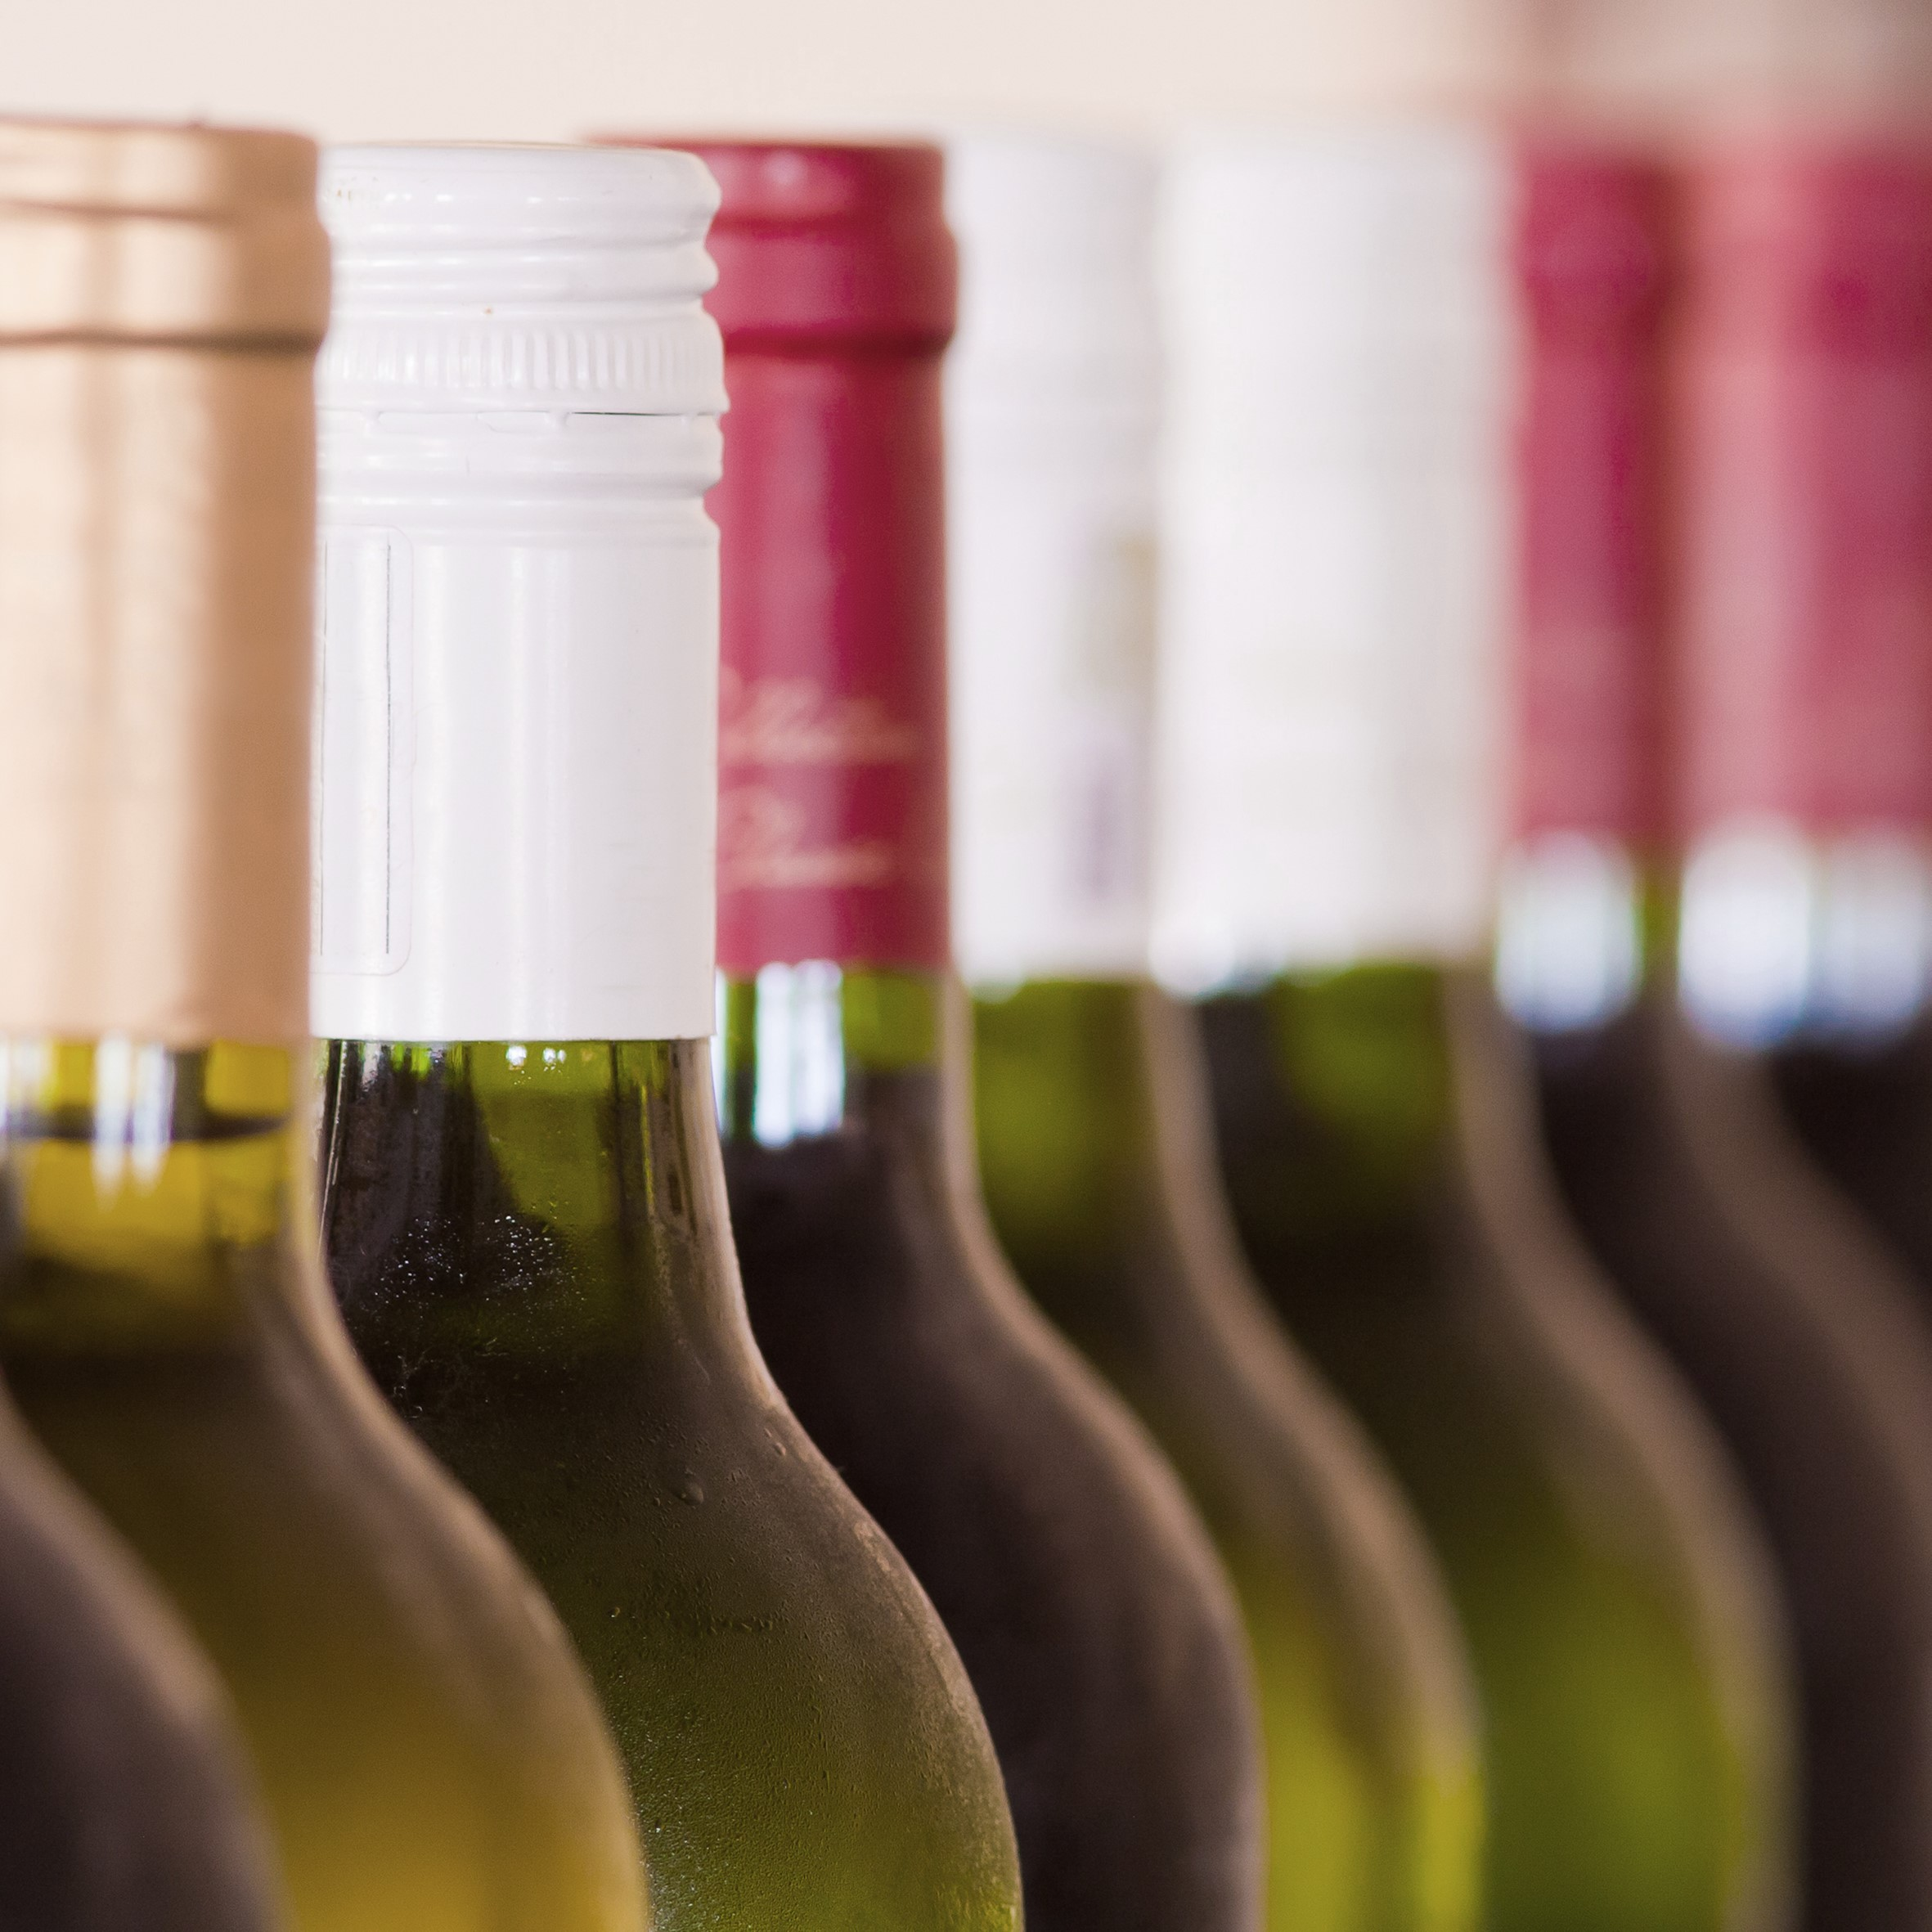 UK Packaging - Four reasons why UK consumers are drinking less wine